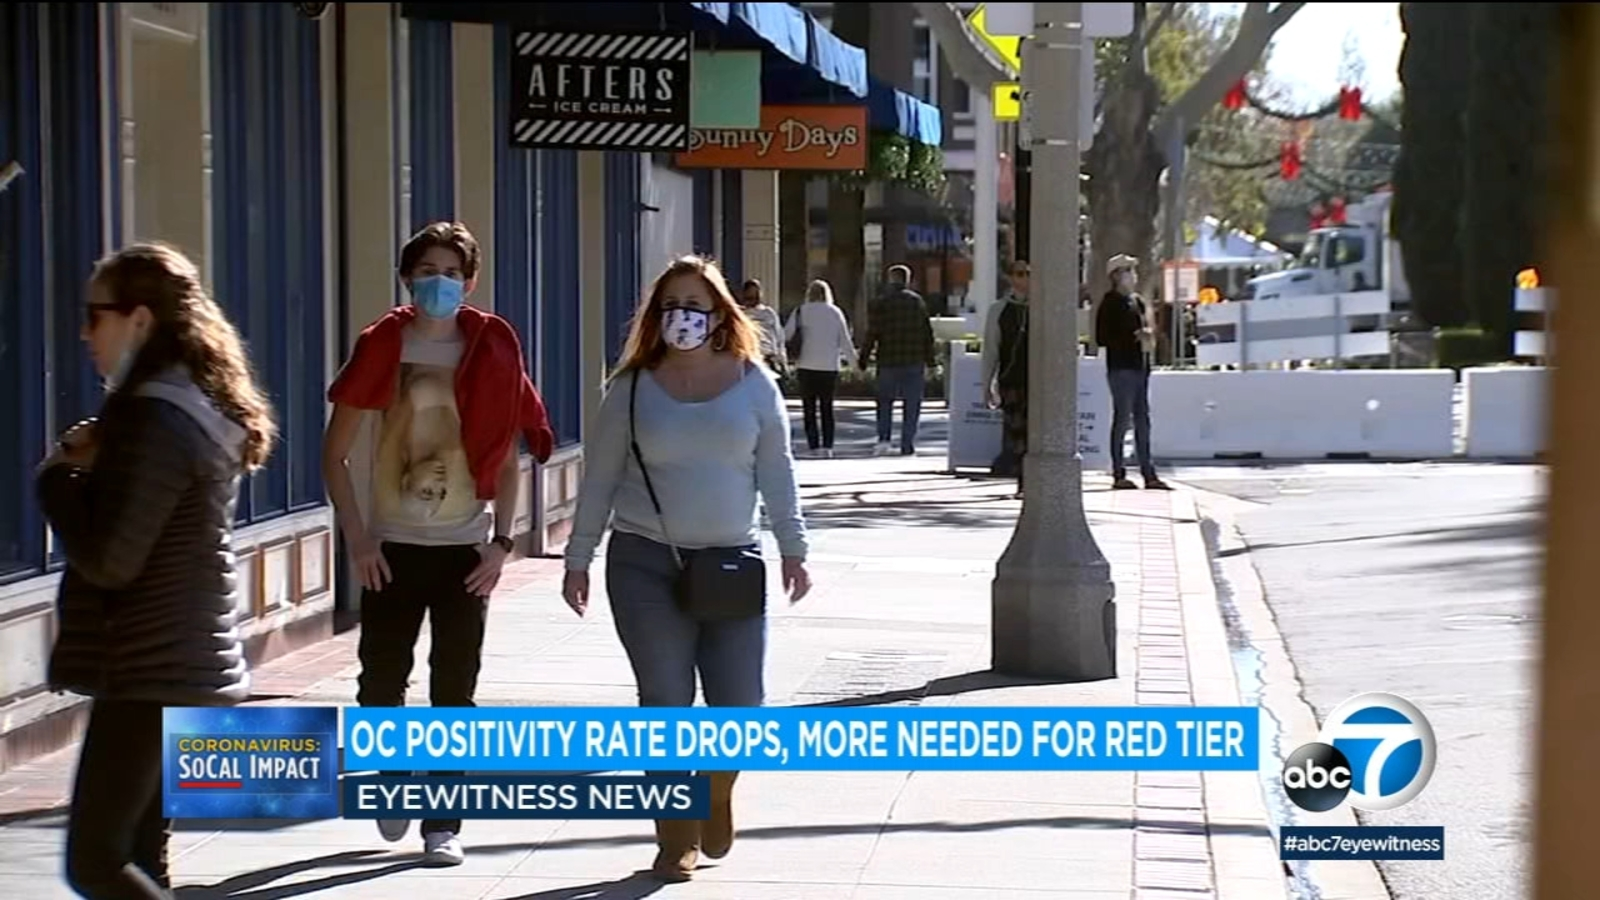 Orange County COVID tier status inches closer to less restrictive red tier - KABC-TV